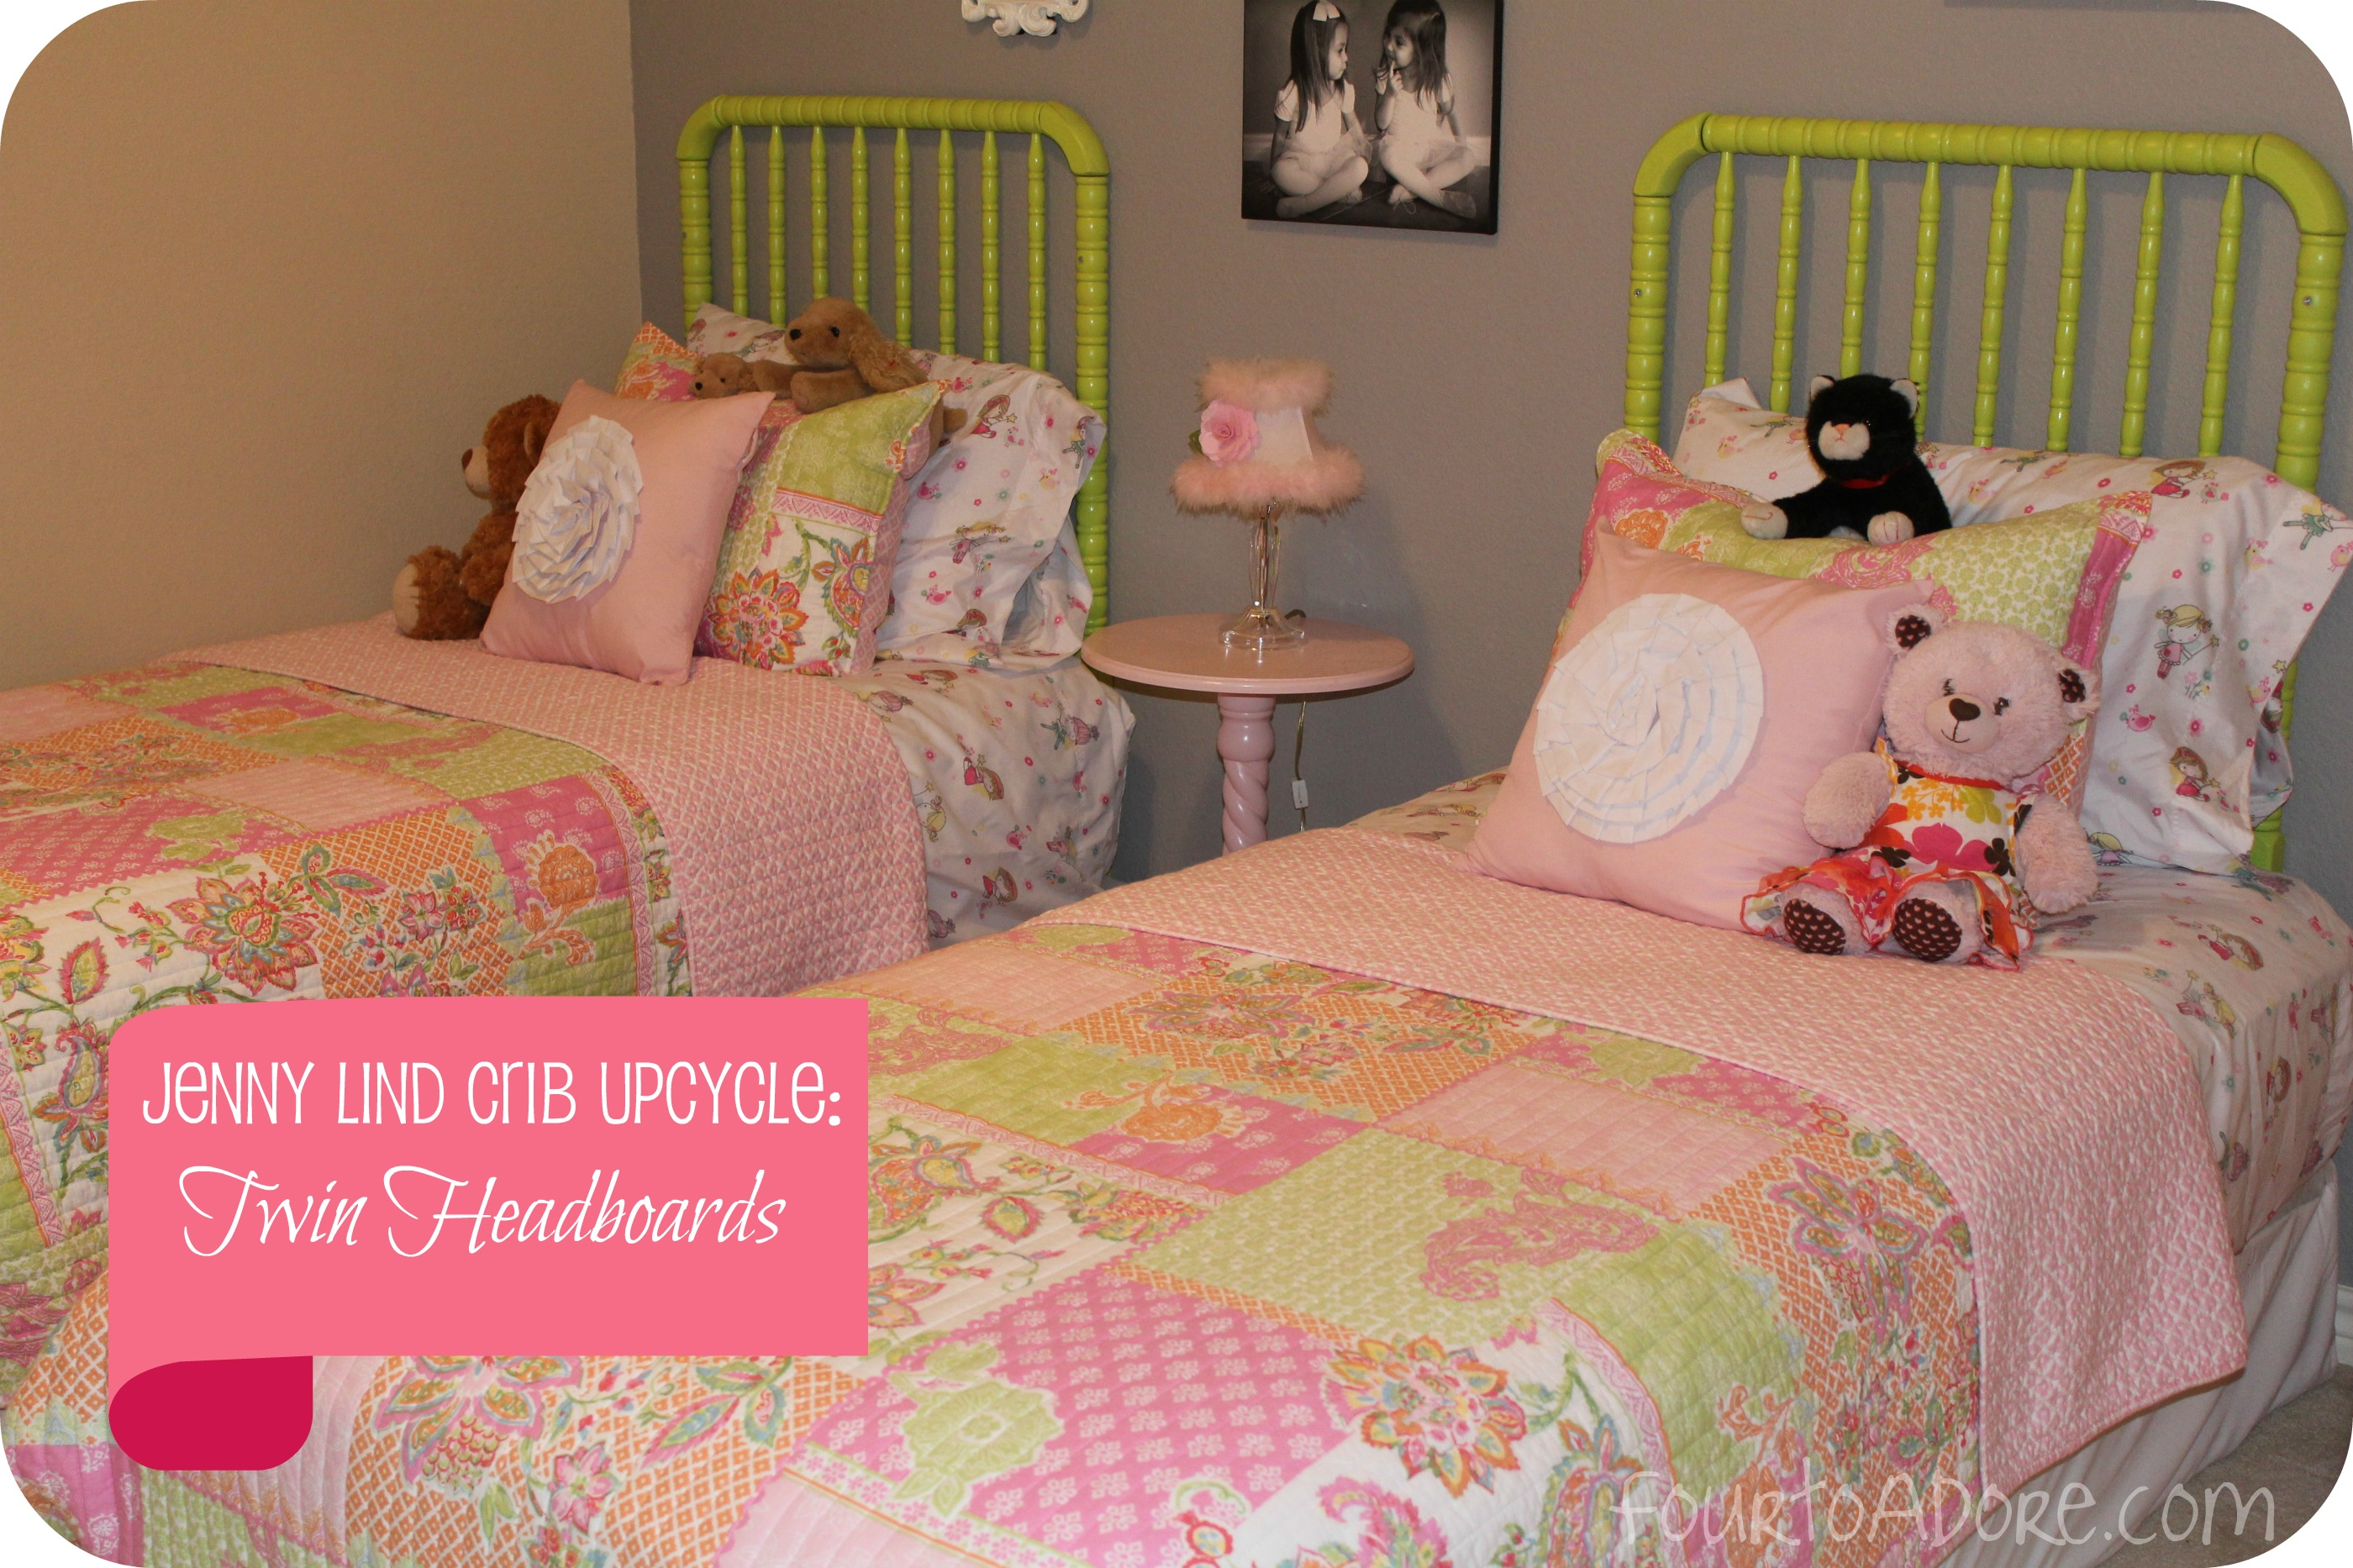 Jenny Lind Crib Upcycle Twin Headboards Four To Adore